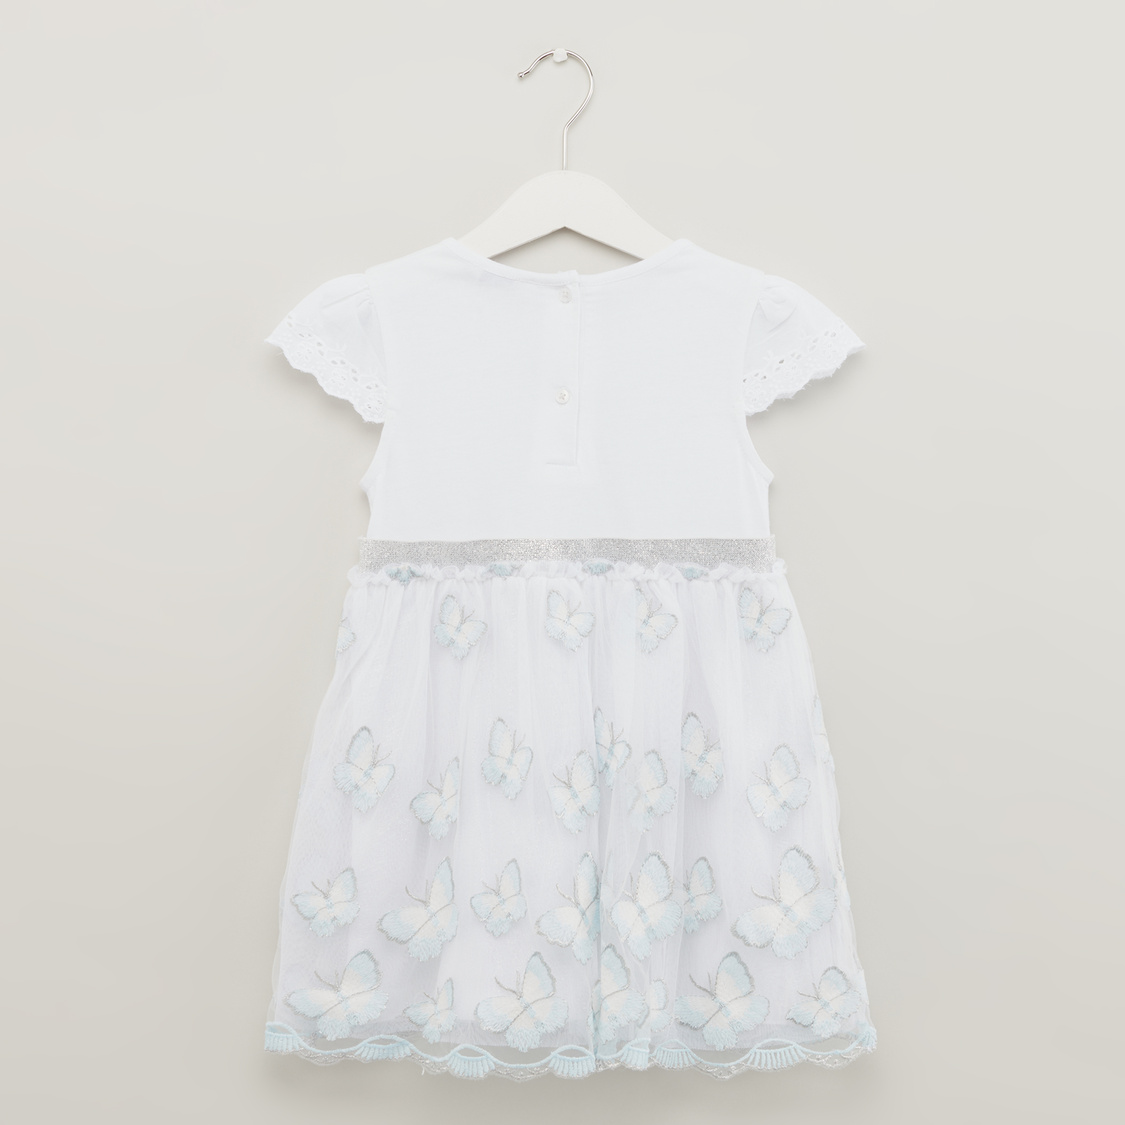 Round Neck Woven Butterfly Knit Dress with Cap Sleeves